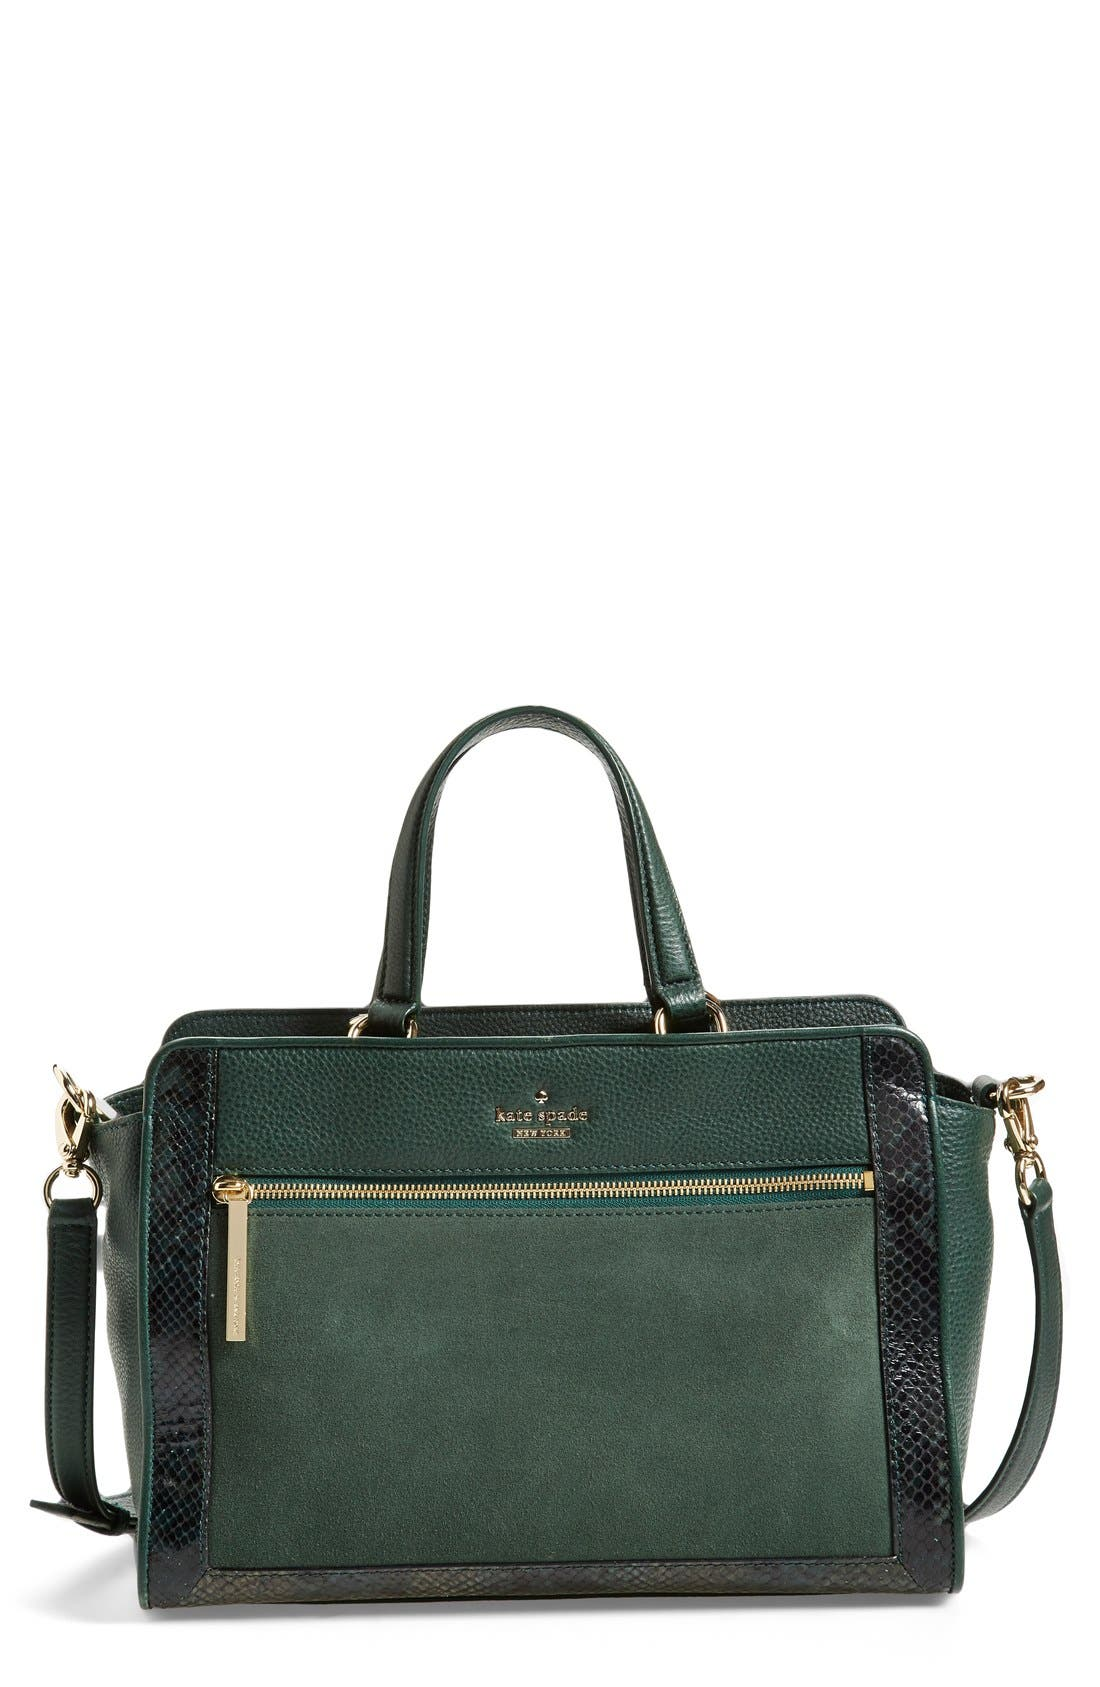 Alternate Image 1 Selected - kate spade new york 'chatham lane - harlan' satchel